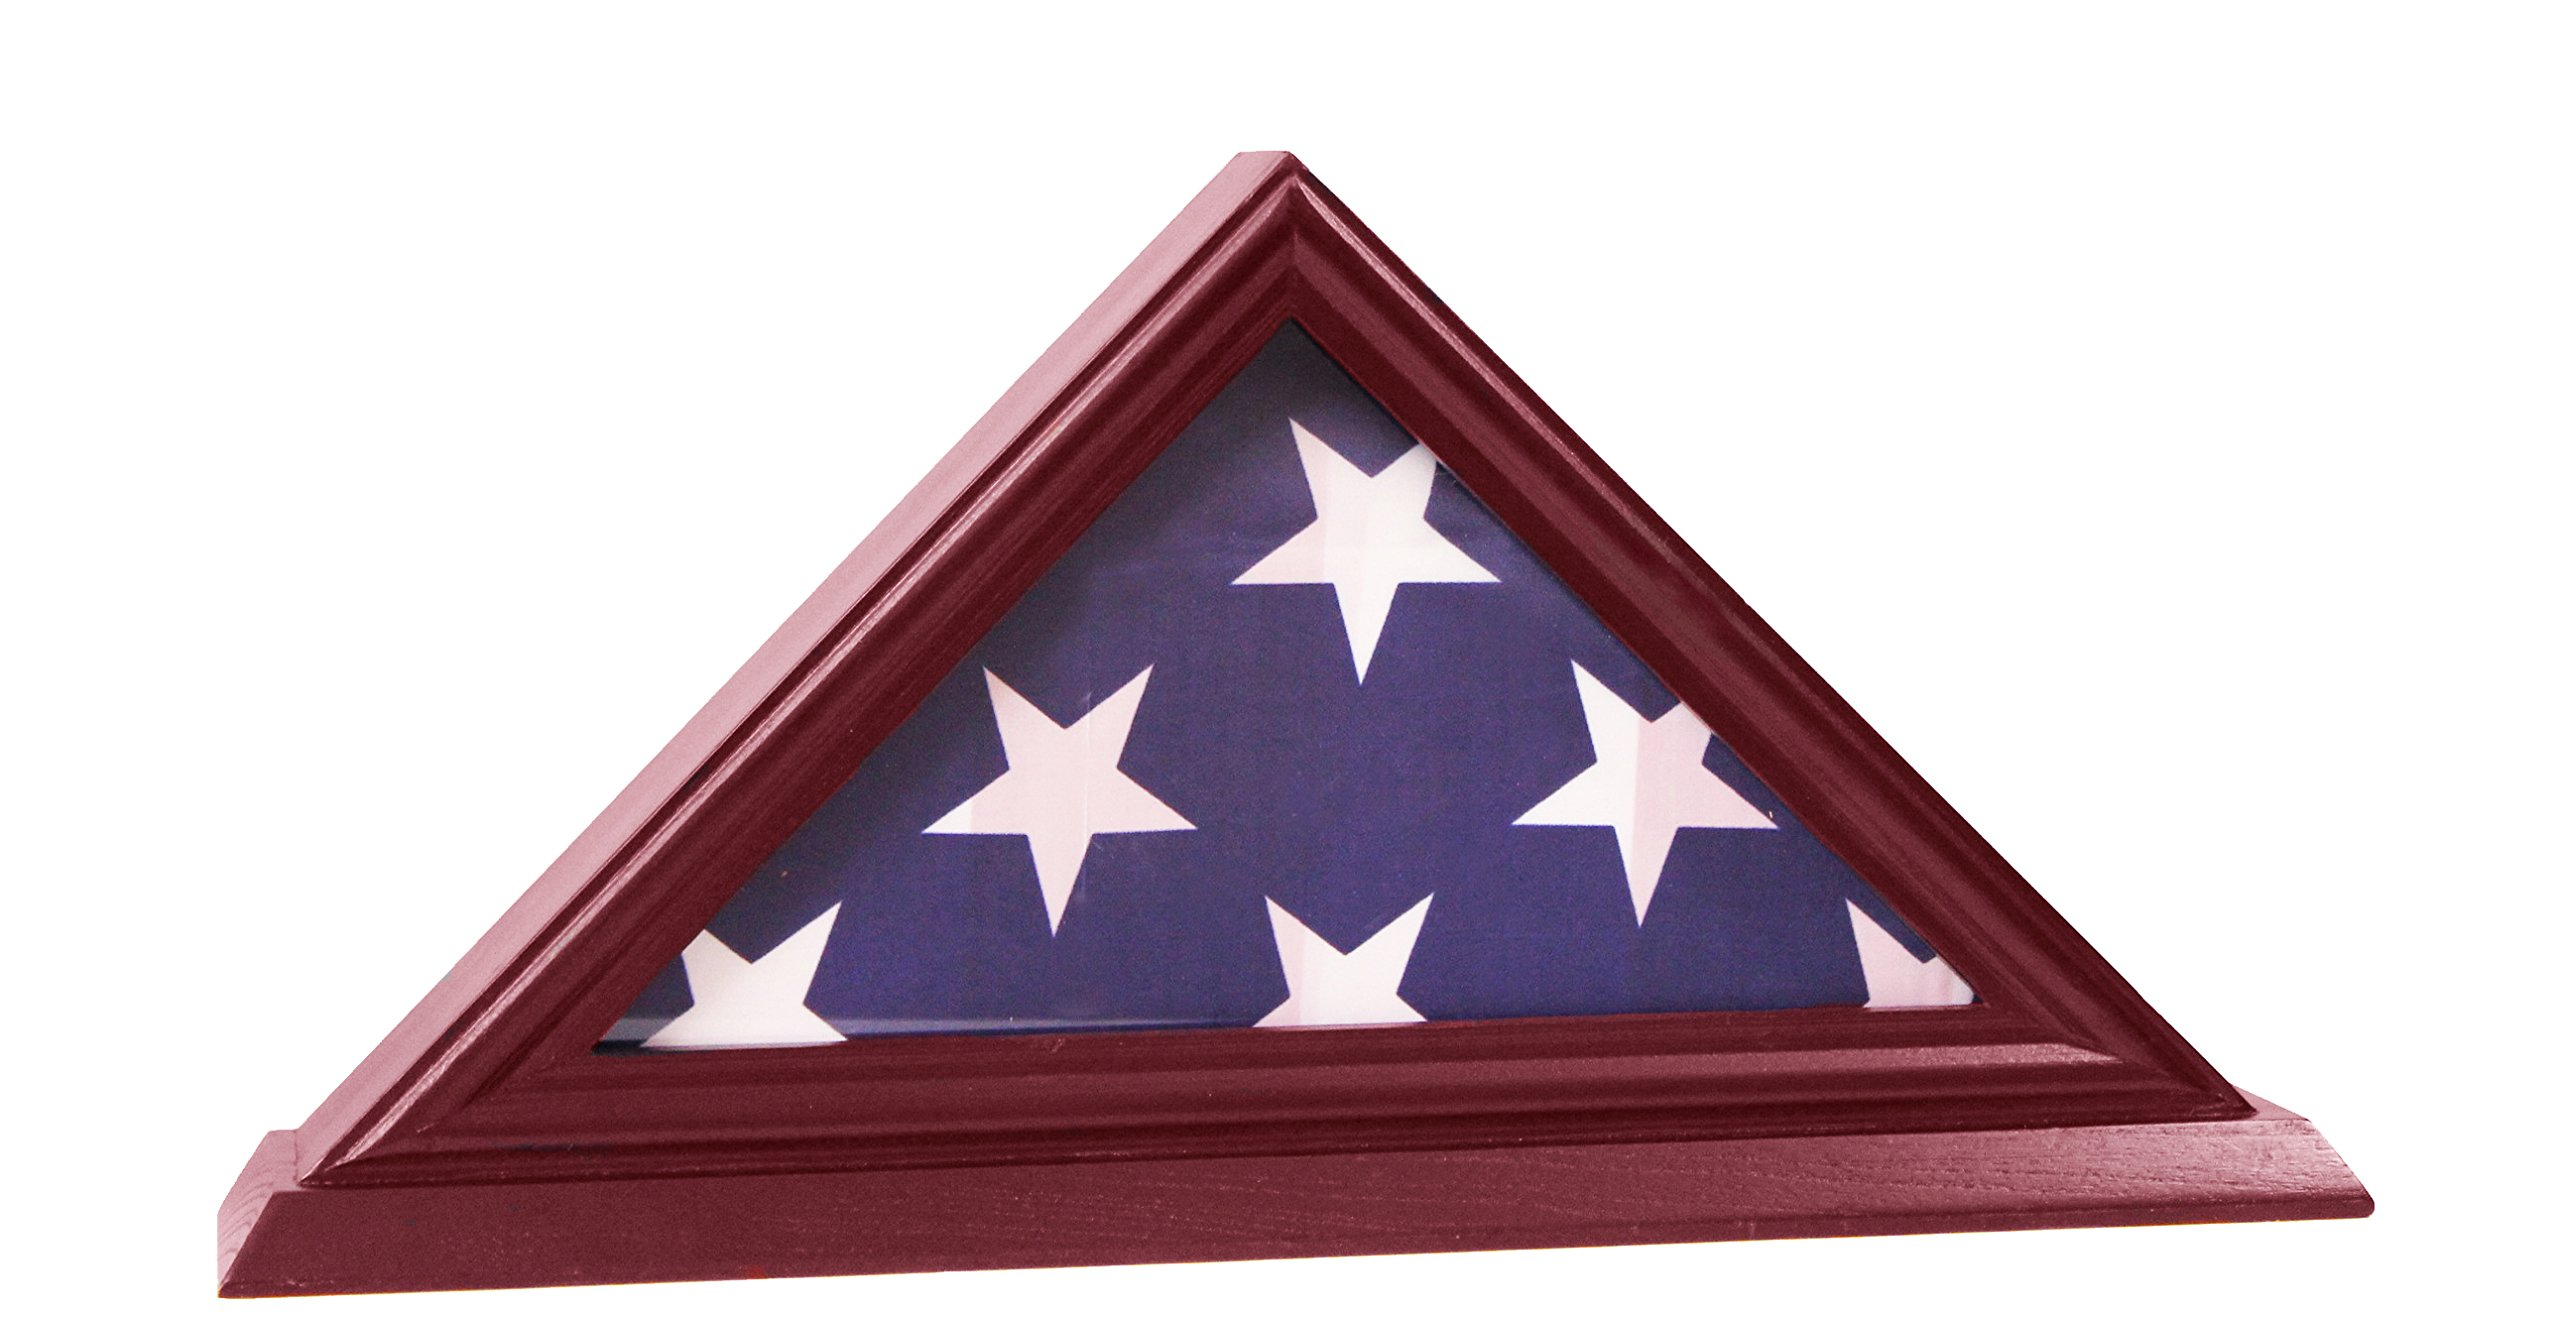 DECOMIL 3'x5' Flag Display Case, Shadow Box (Not for Burial Funeral Flag), Solid Wood, Cherry Finish by DECOMIL